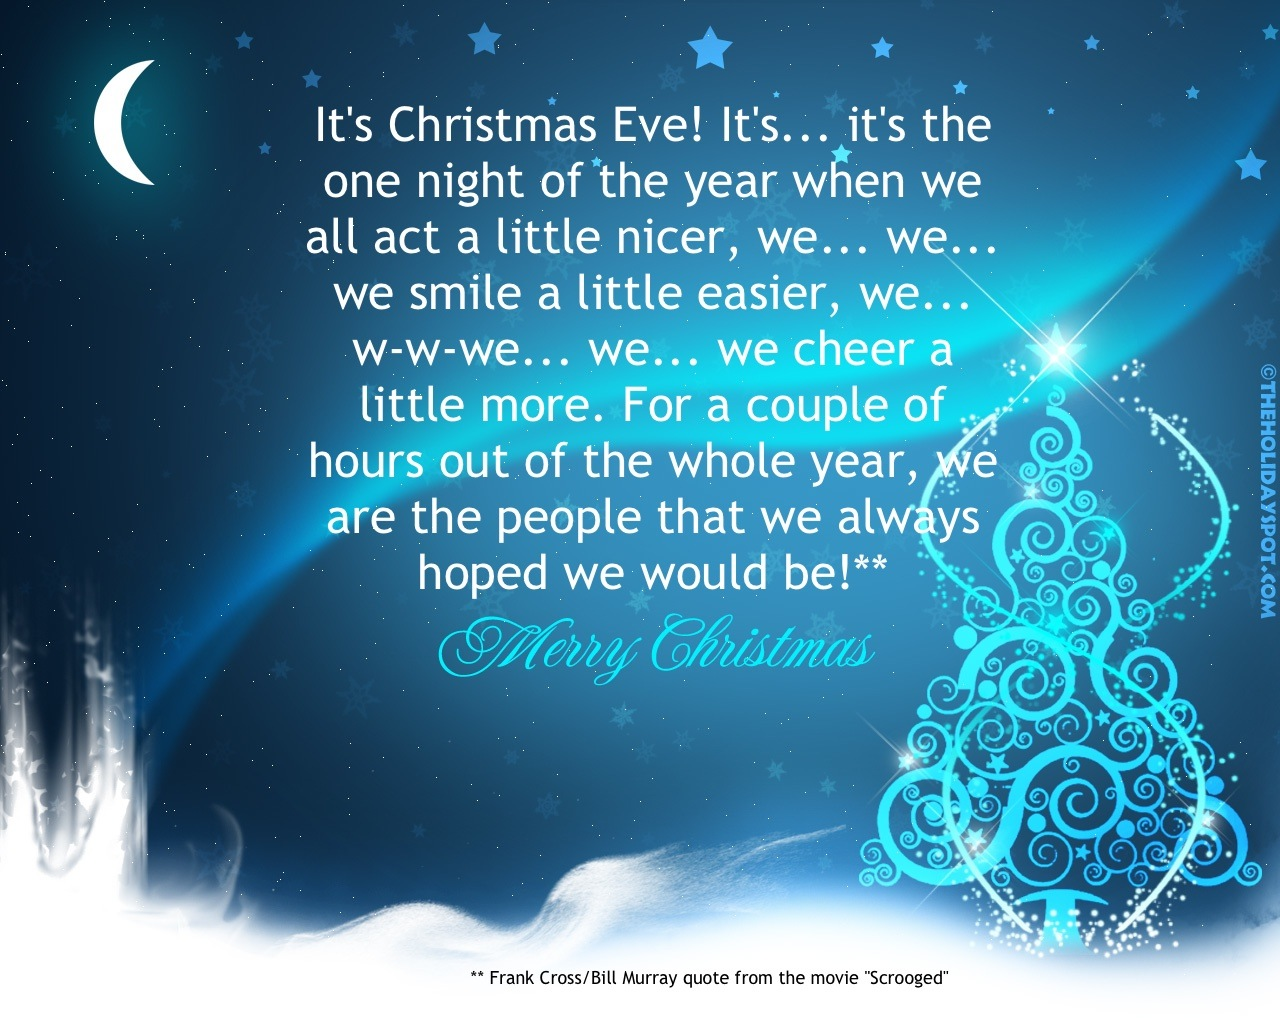 Christmas List Quotes Quotesgram: Christmas Eve Religious Quotes. QuotesGram